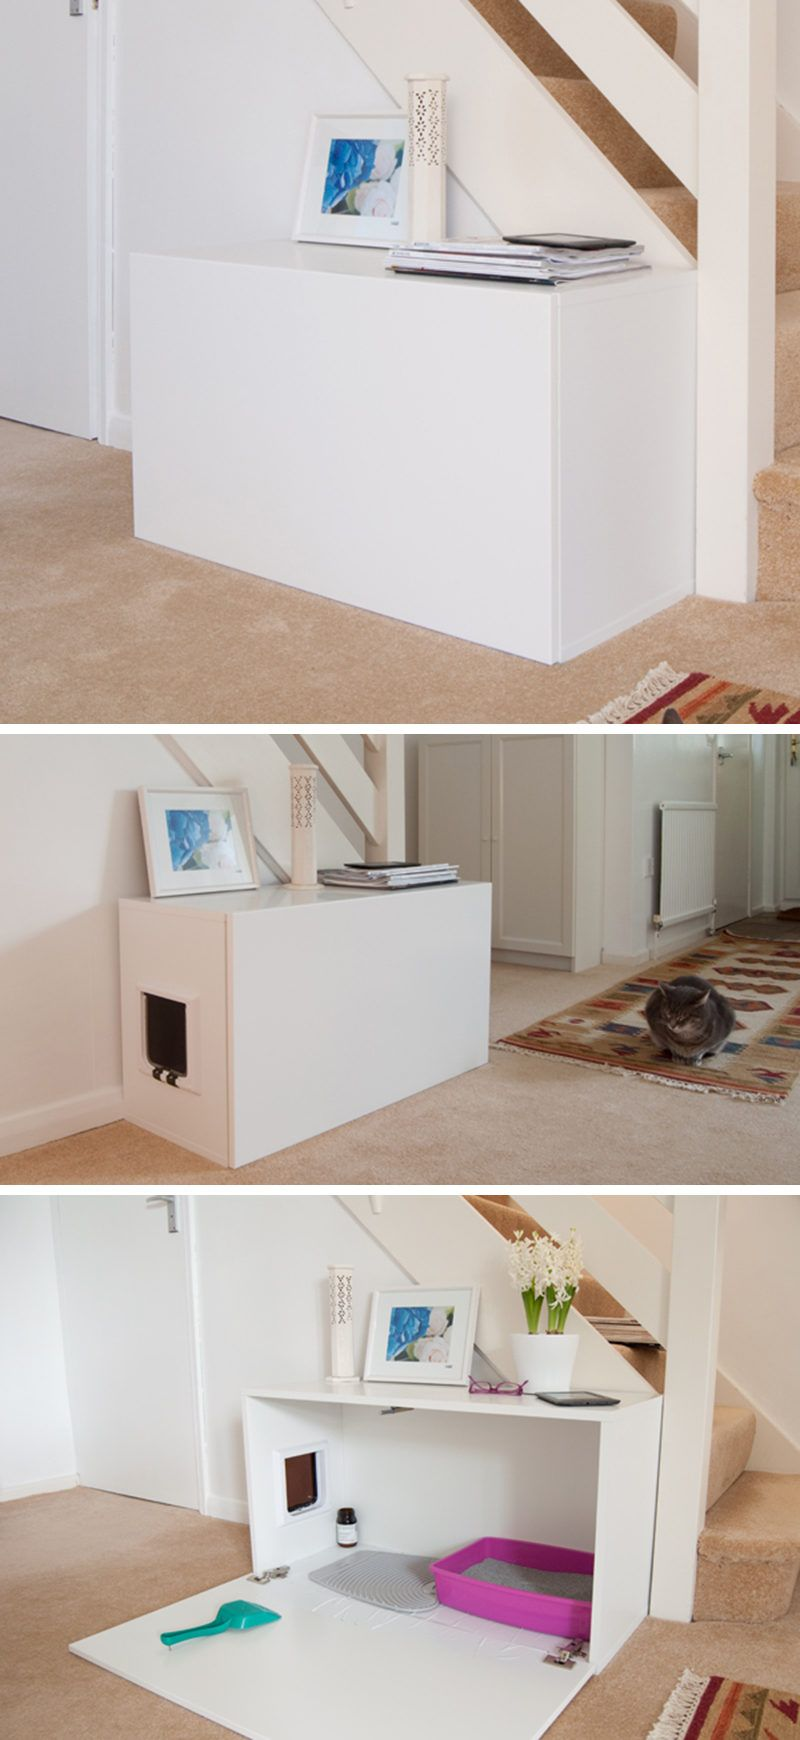 10 Ideas For Hiding Your Cat Litter Box Cat Room Diy Cat Room Ikea Cabinets